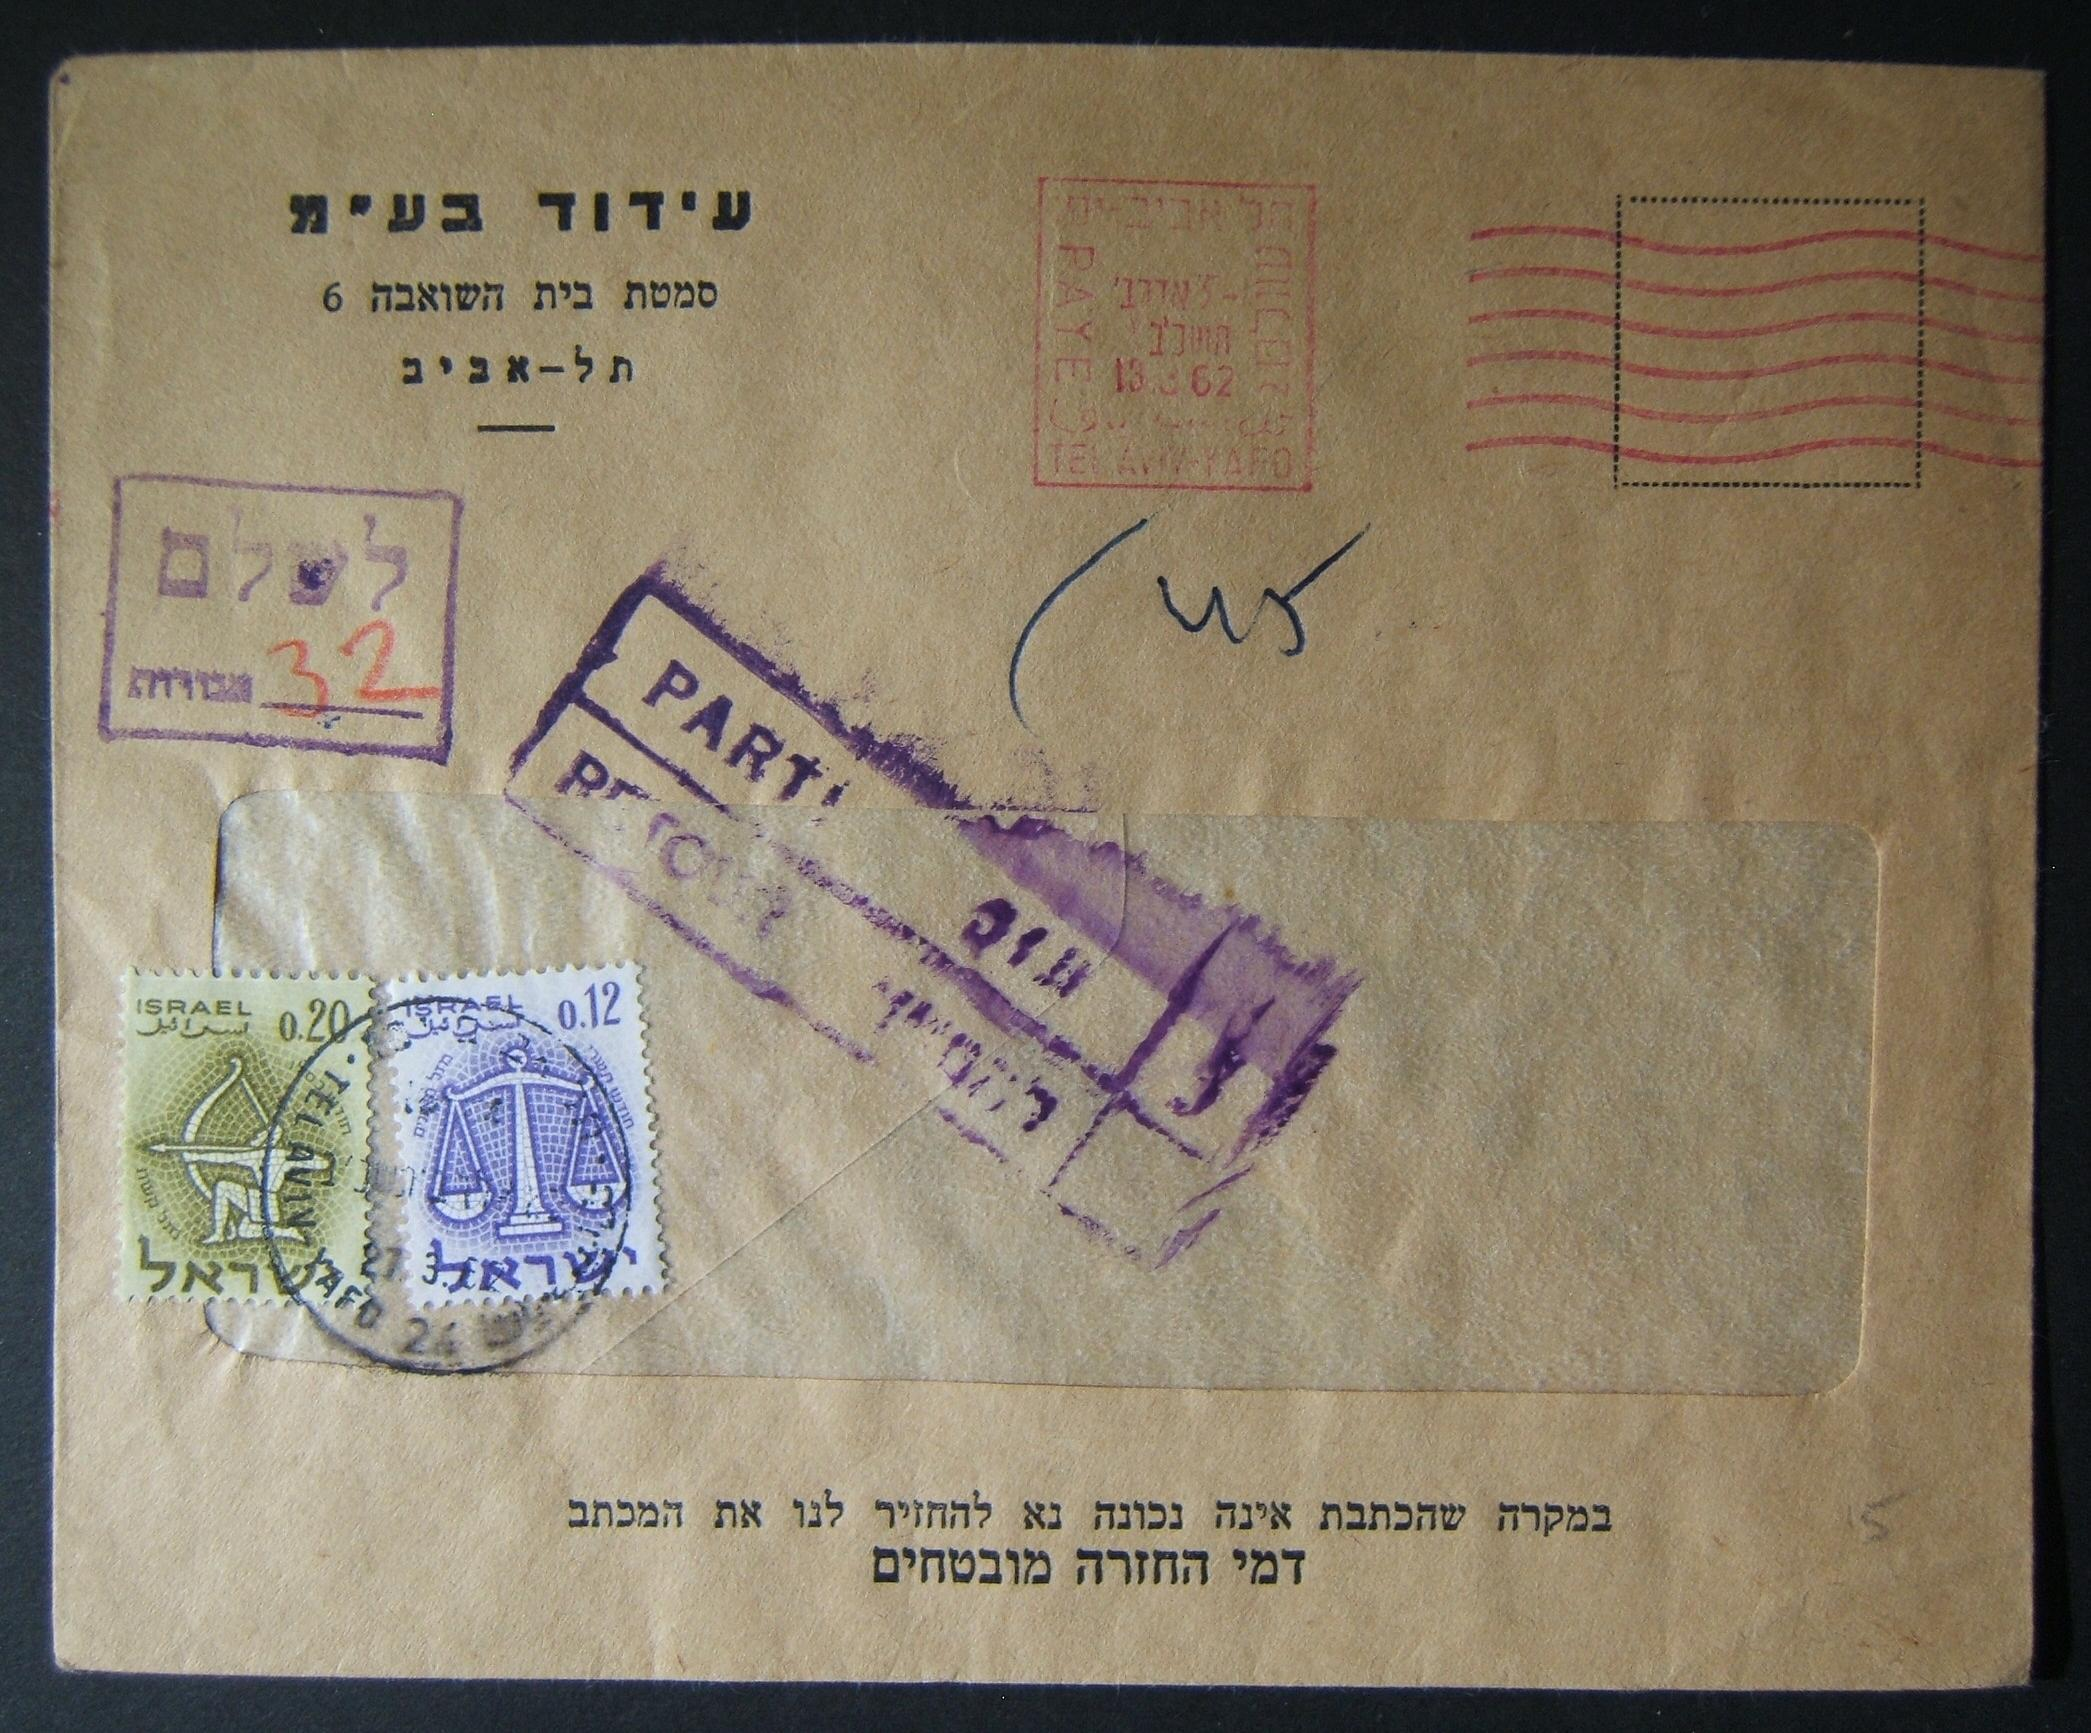 1962 domestic 'top of the pile' taxed franking: 13-3-62 printed matter commercial cover ex TLV branch of Idud Ltd. franked by machine prepayment at the DO-11 period 8 Ag PM rate bu